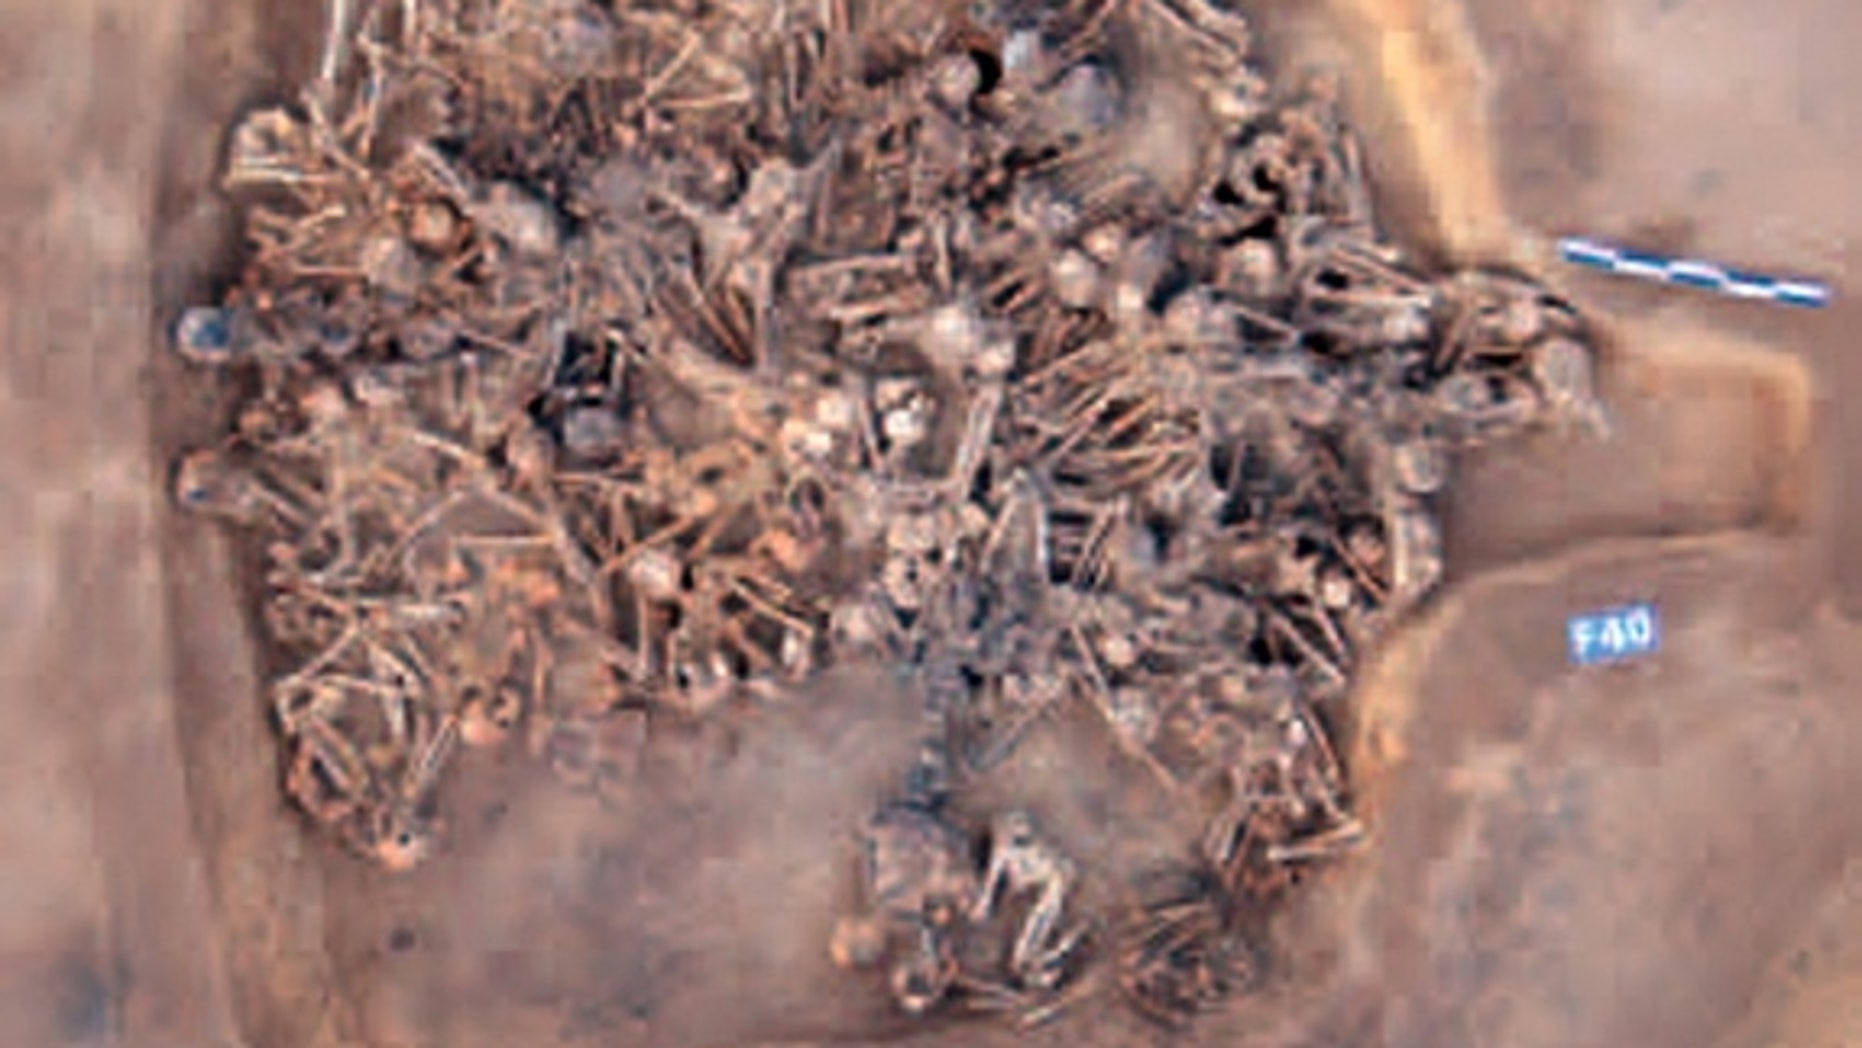 The 5,000-year-old house found in China was about 14 by 15 feet in size.